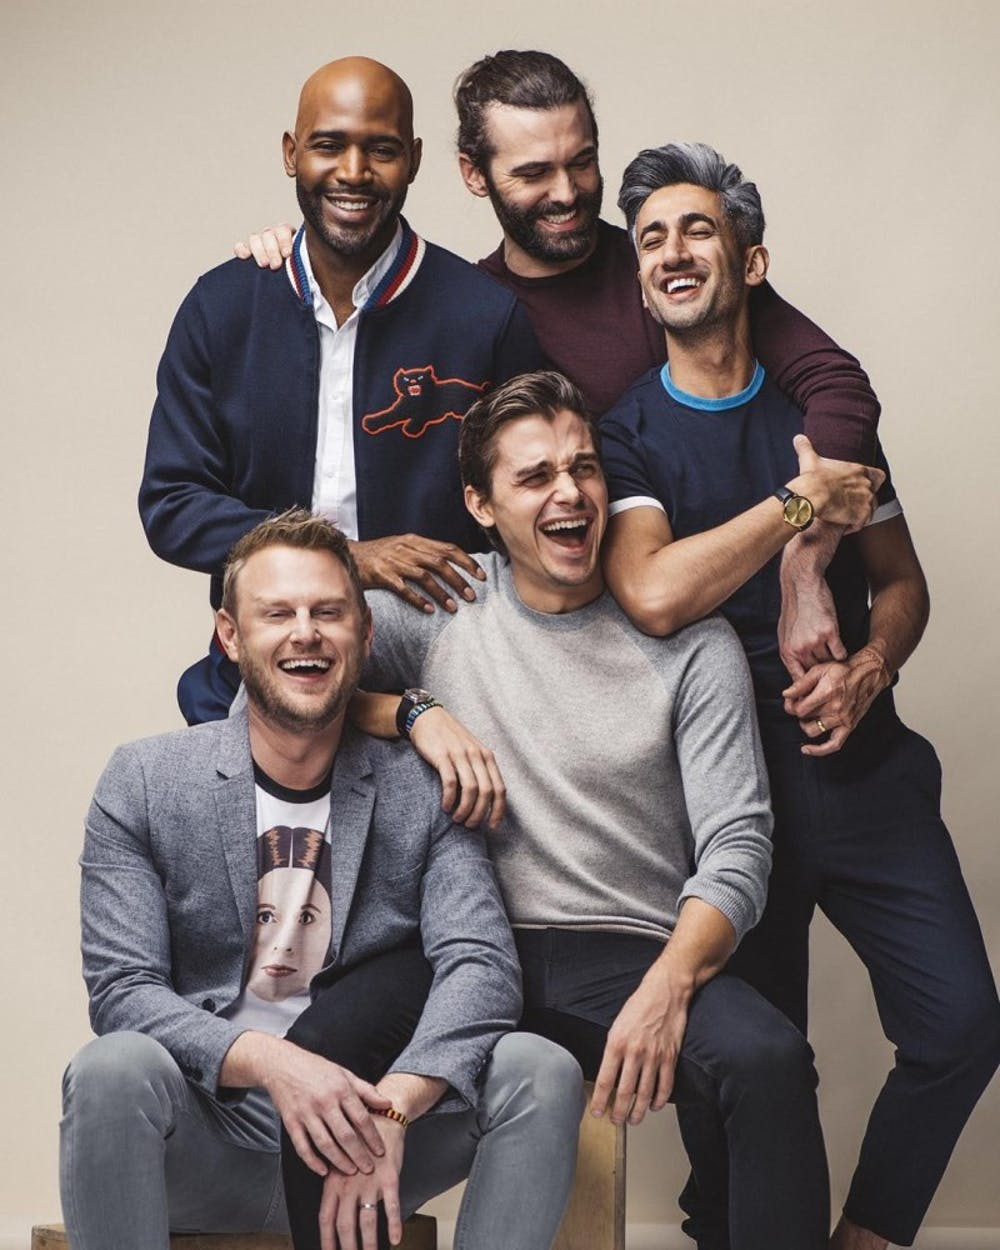 5 reasons why everyone should watch 'Queer Eye' - The Post